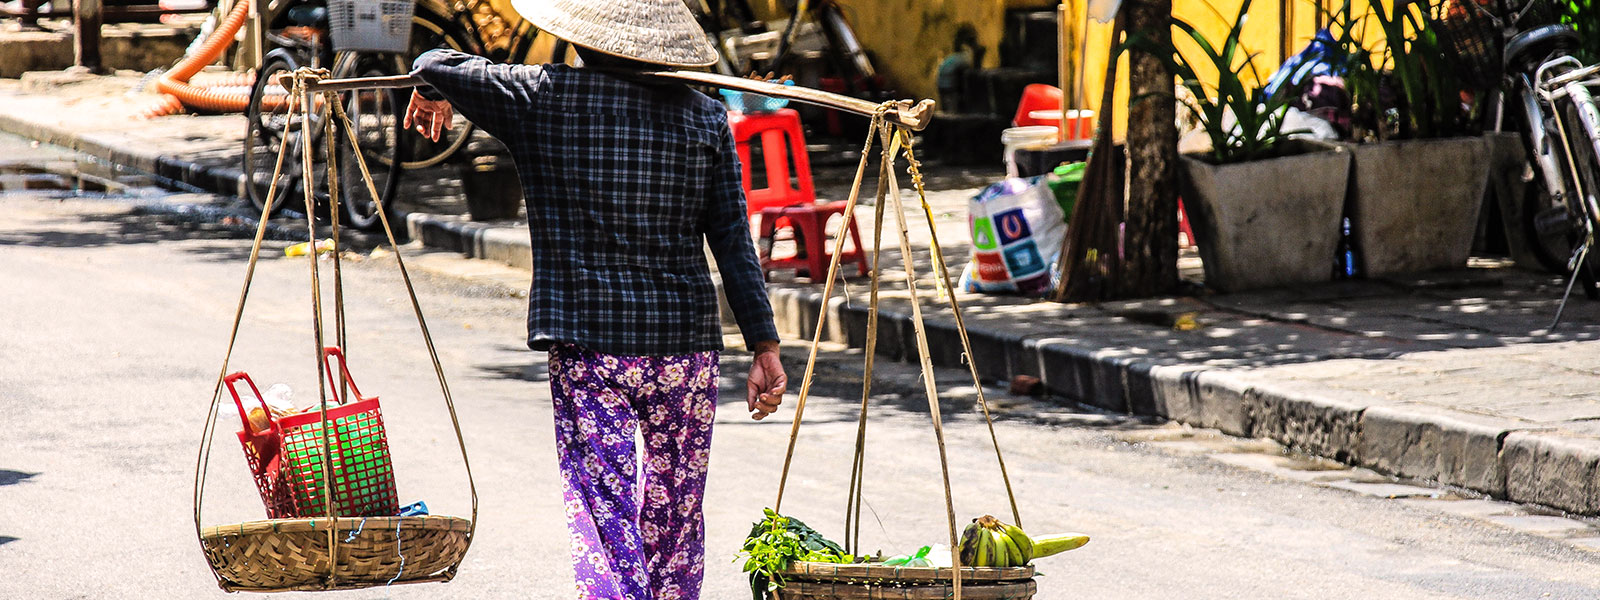 Local citizen carrying two baskets hanging from the shoulders on a busy street